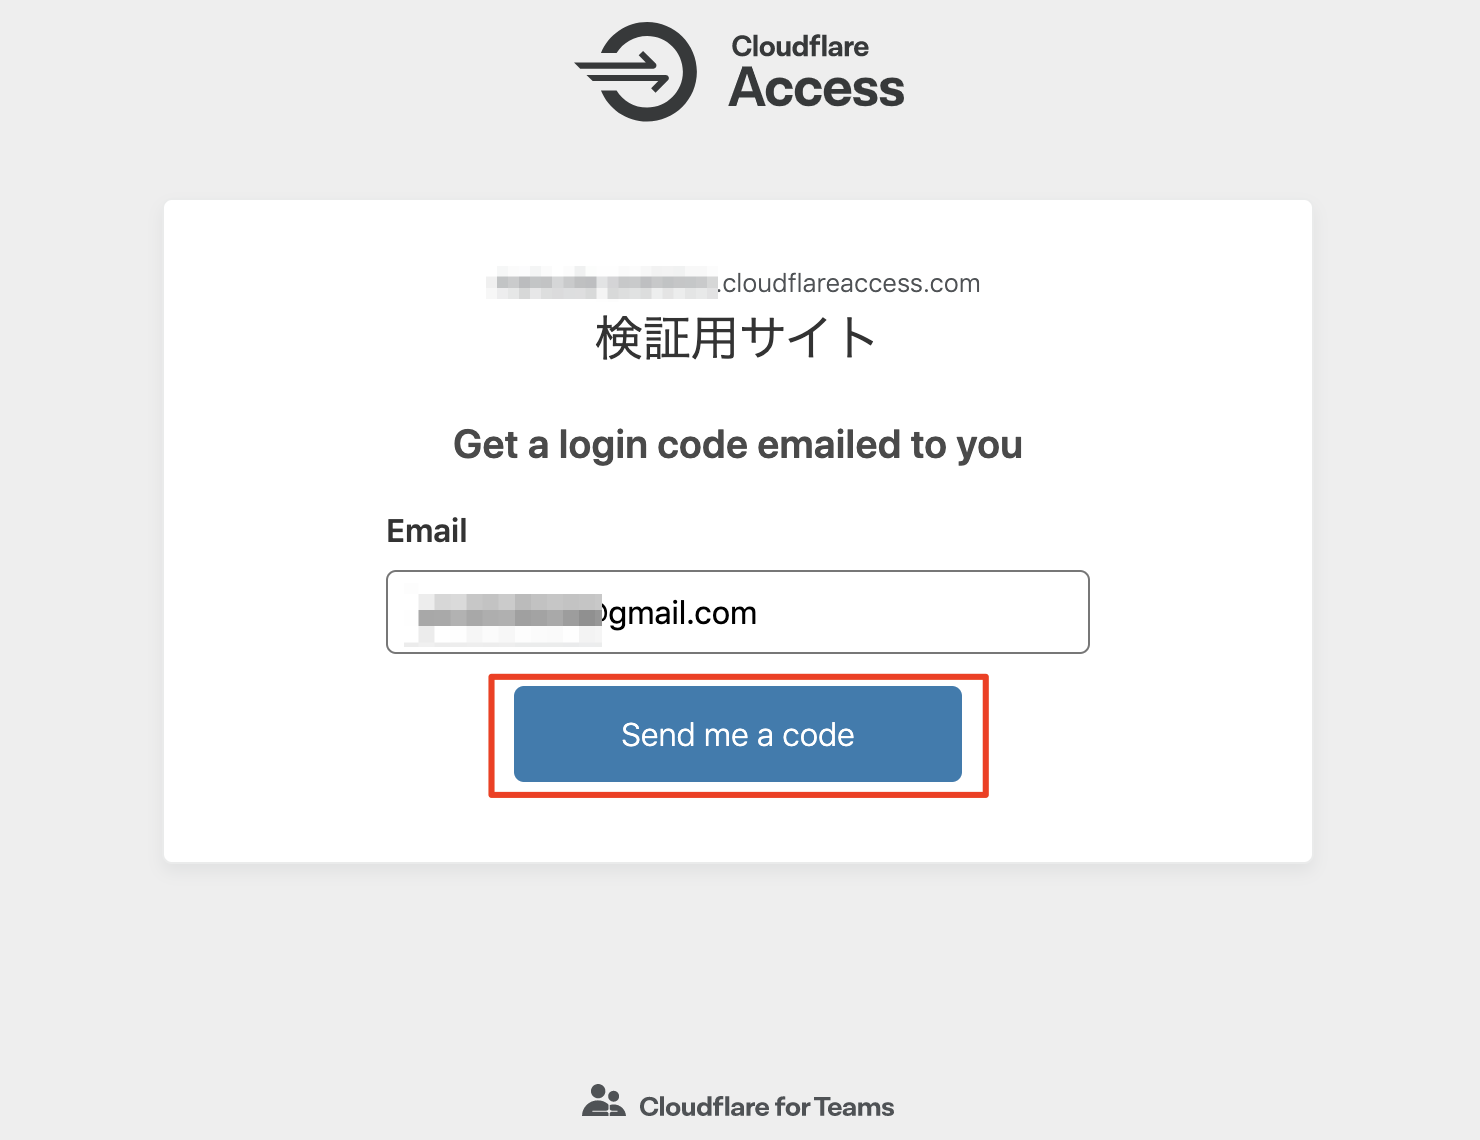 Cloudflare Access の認証画面